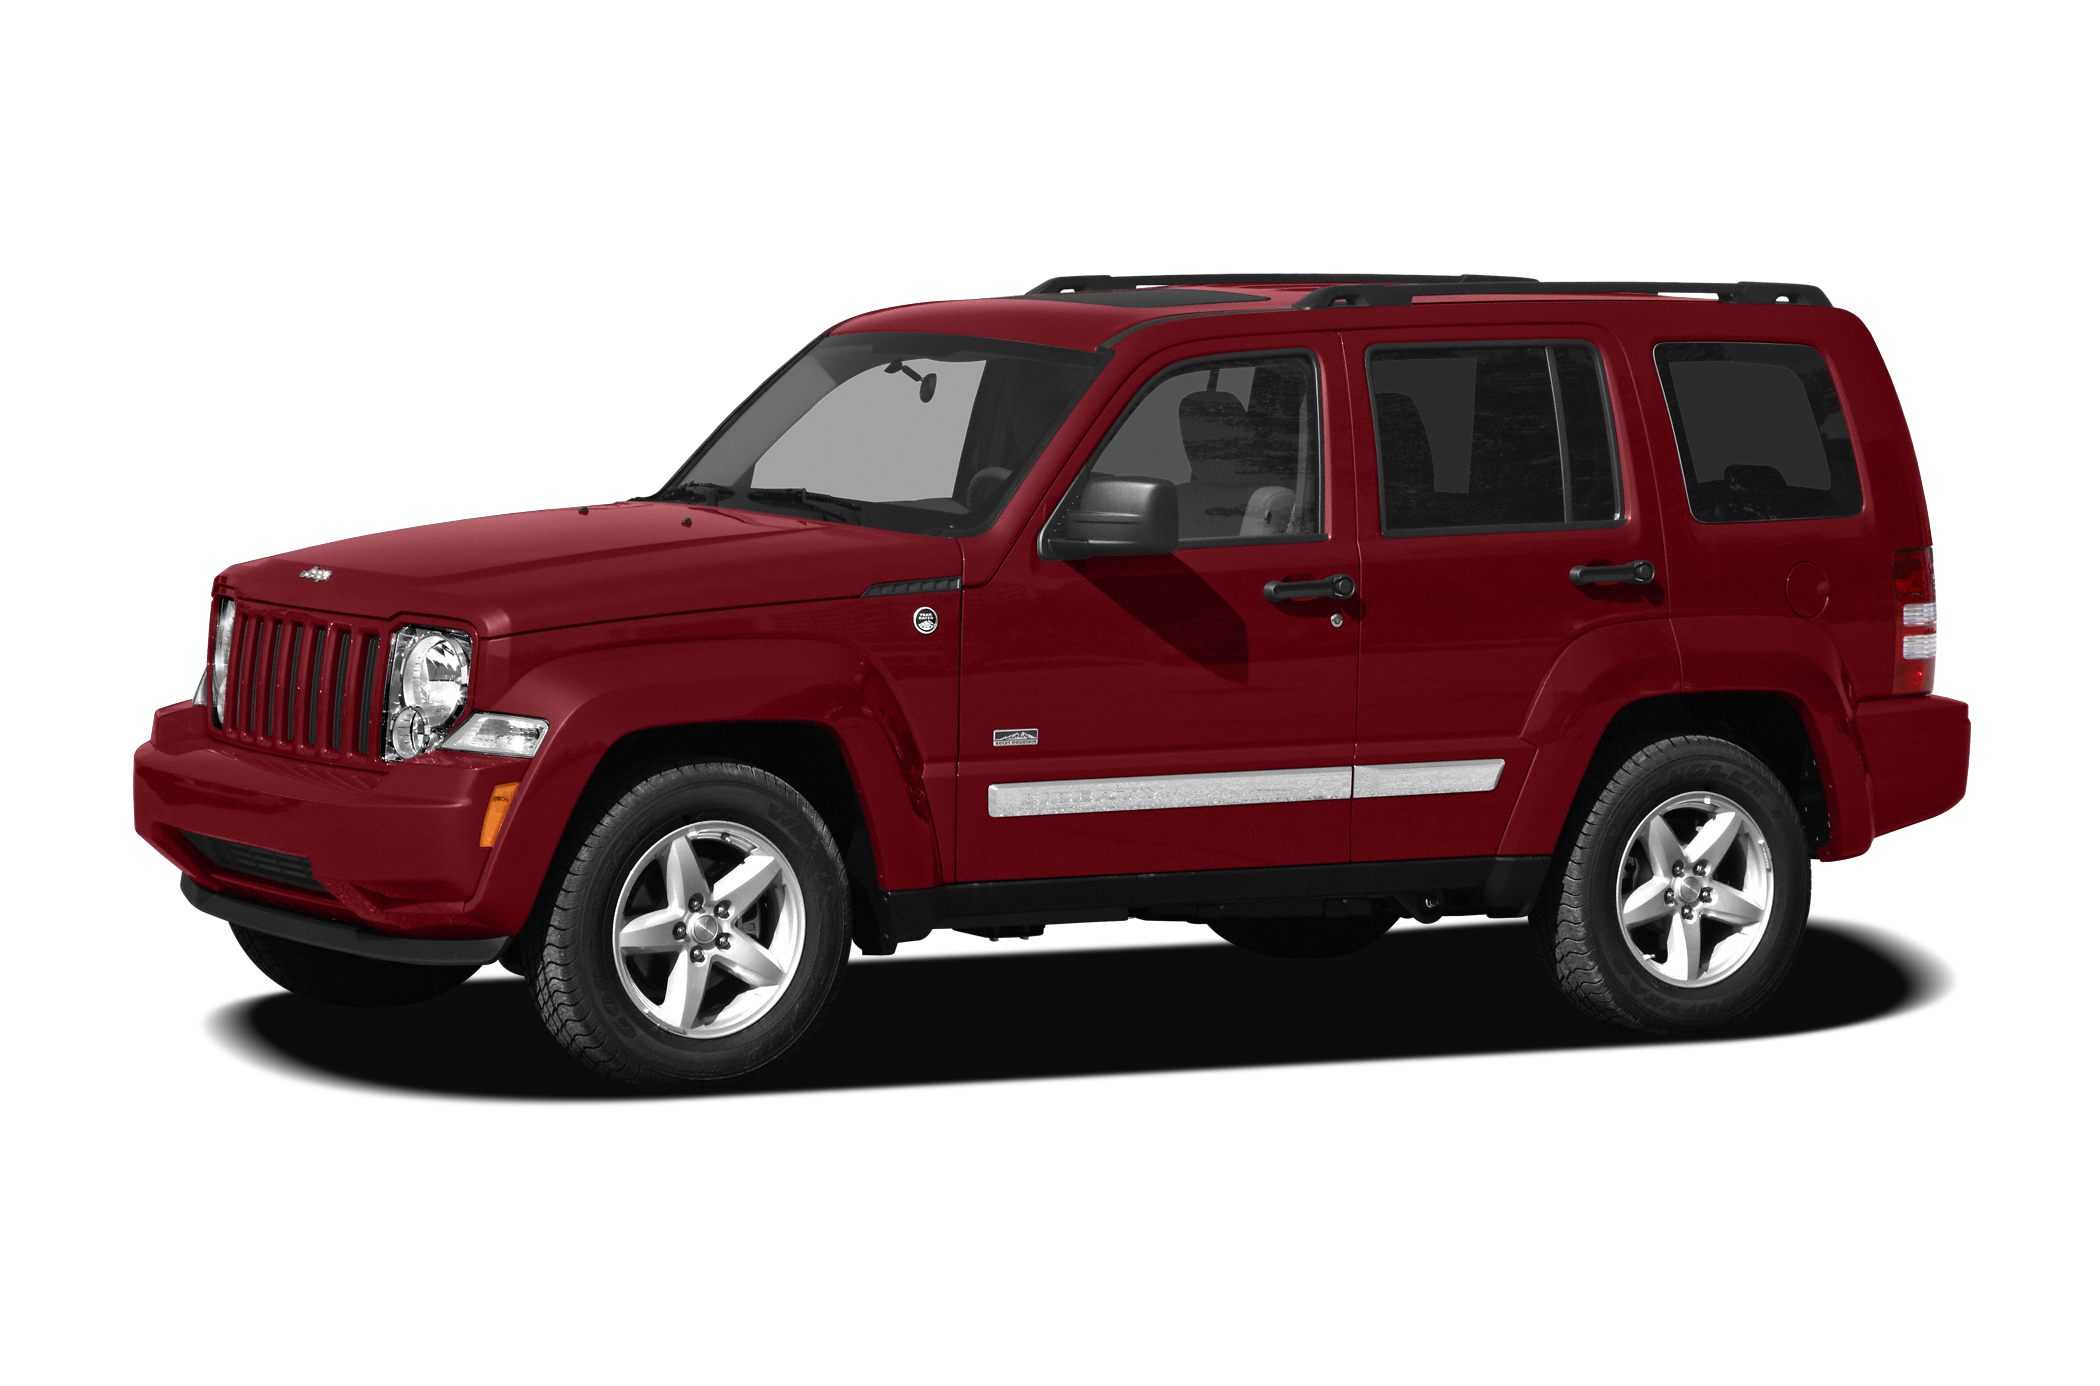 2012 Jeep Liberty Crash Test Ratings